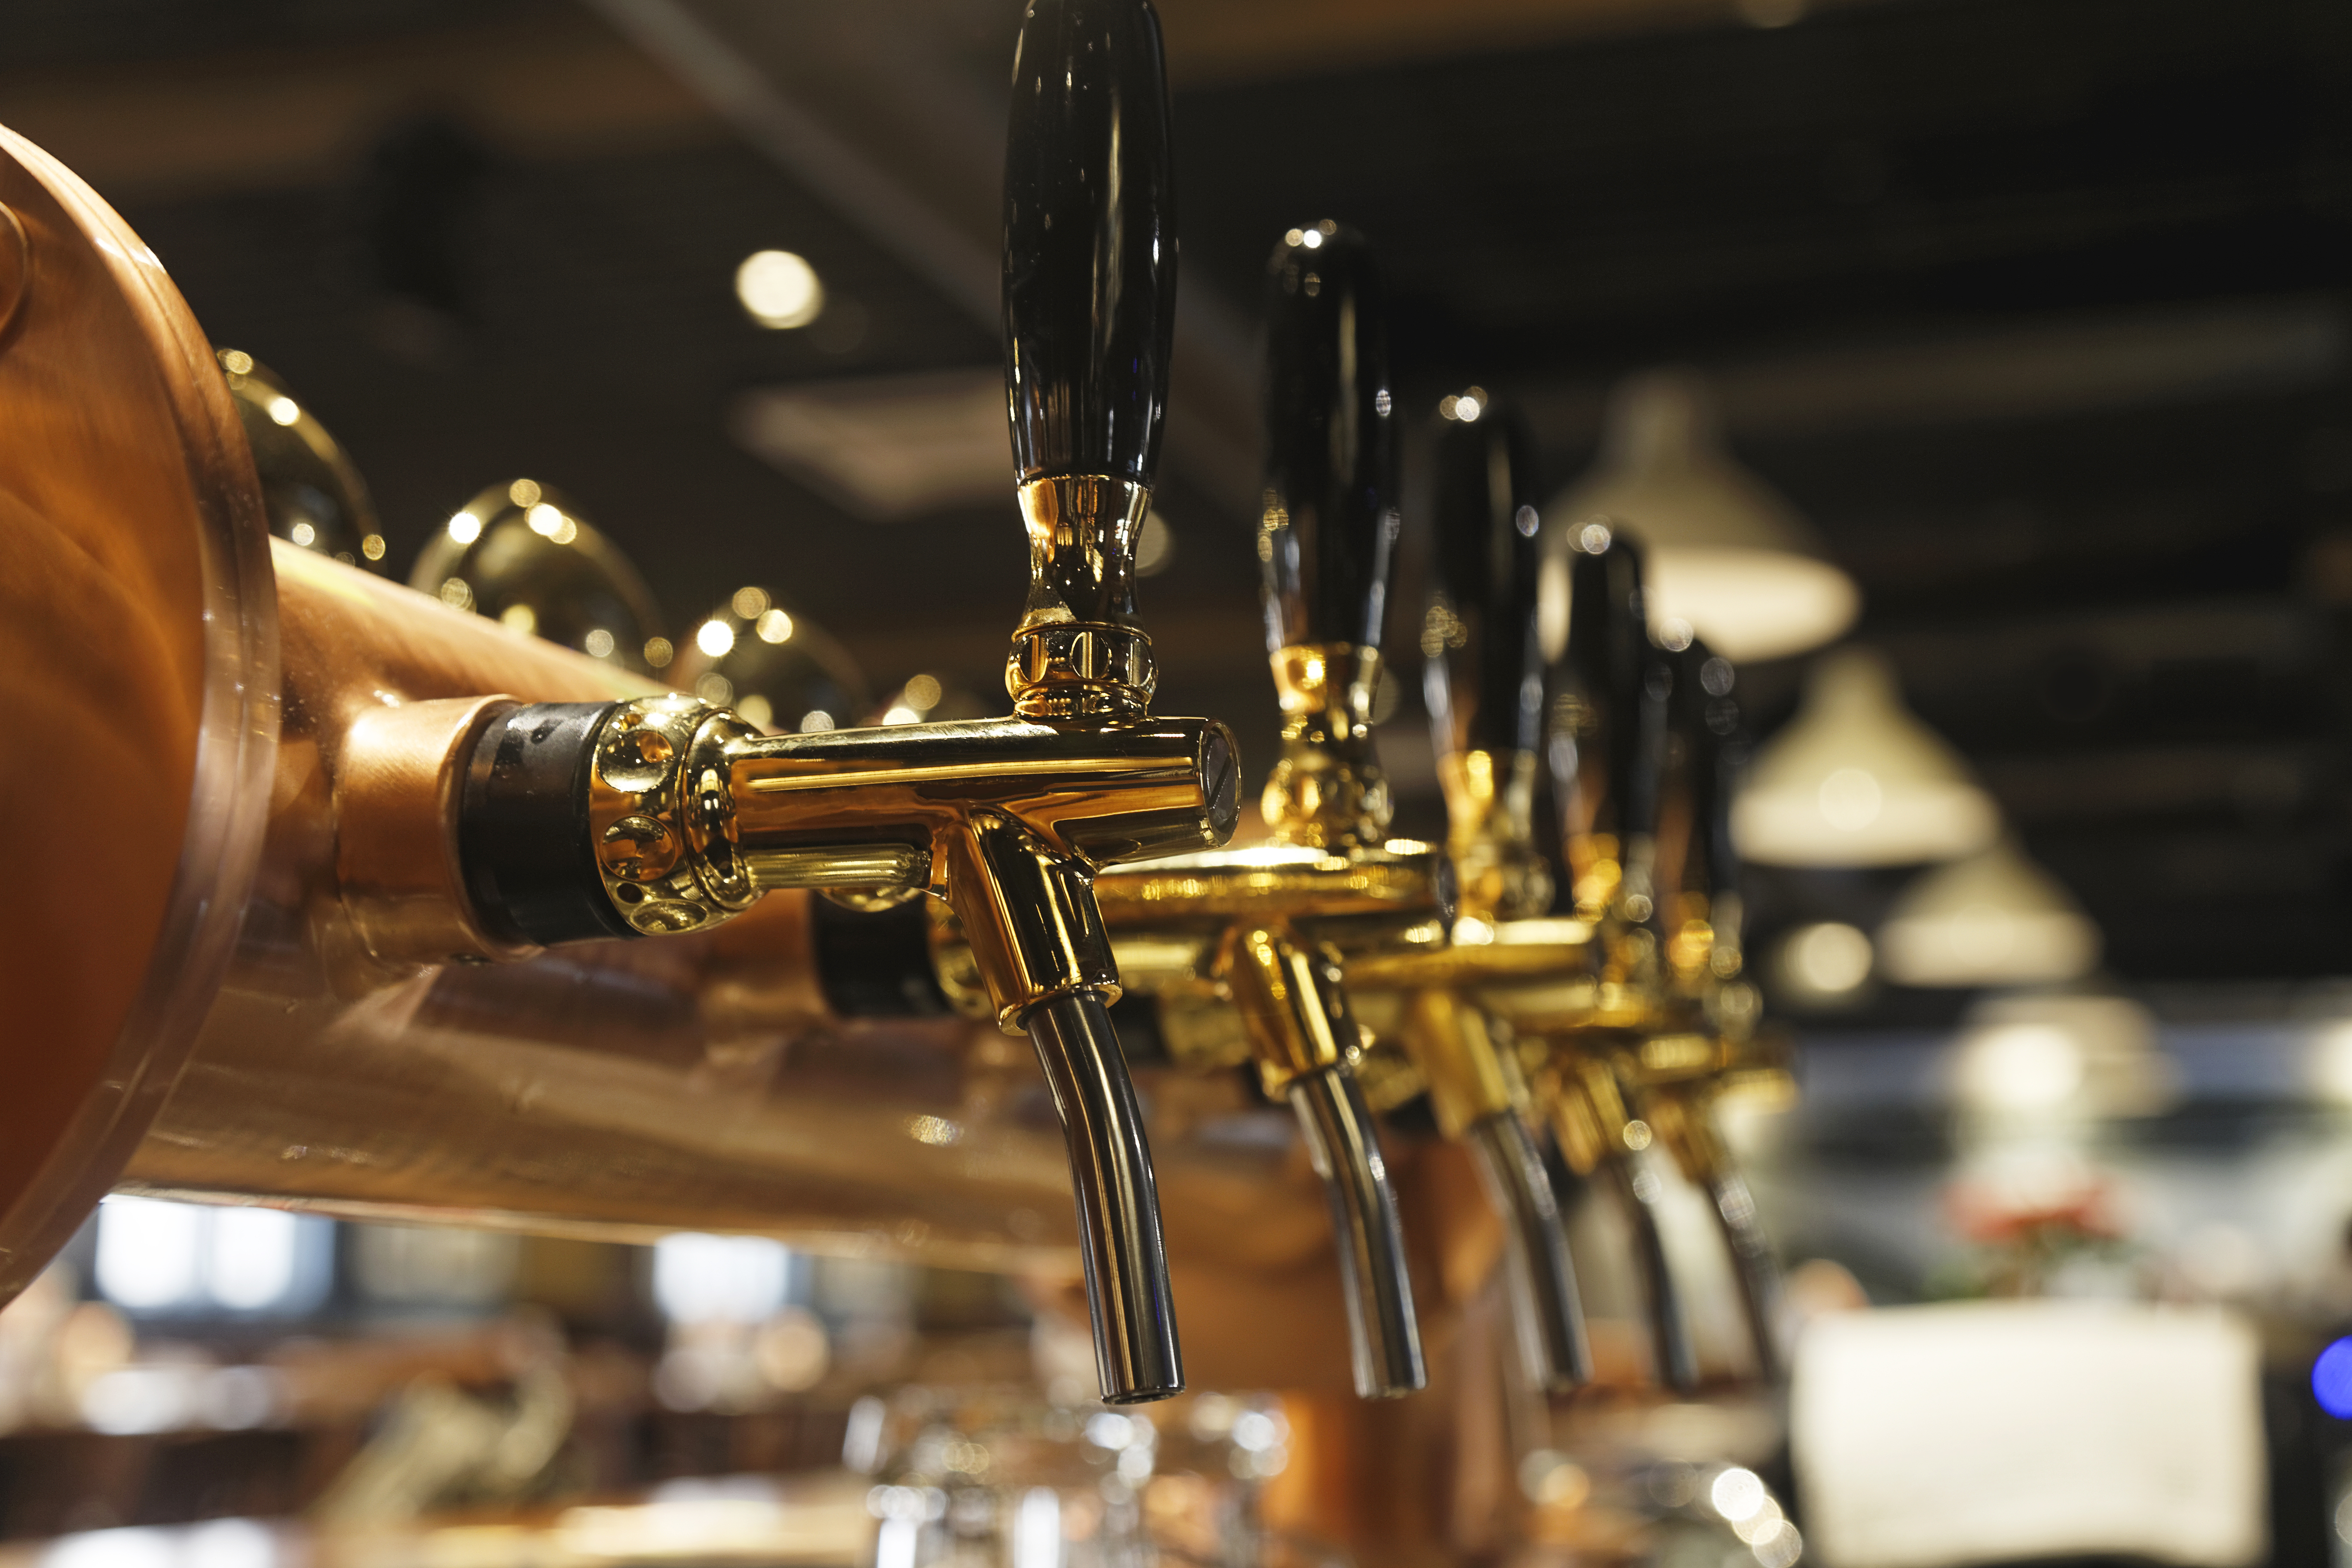 A row of brass taps inside a taproom at a brewery, shown closeup